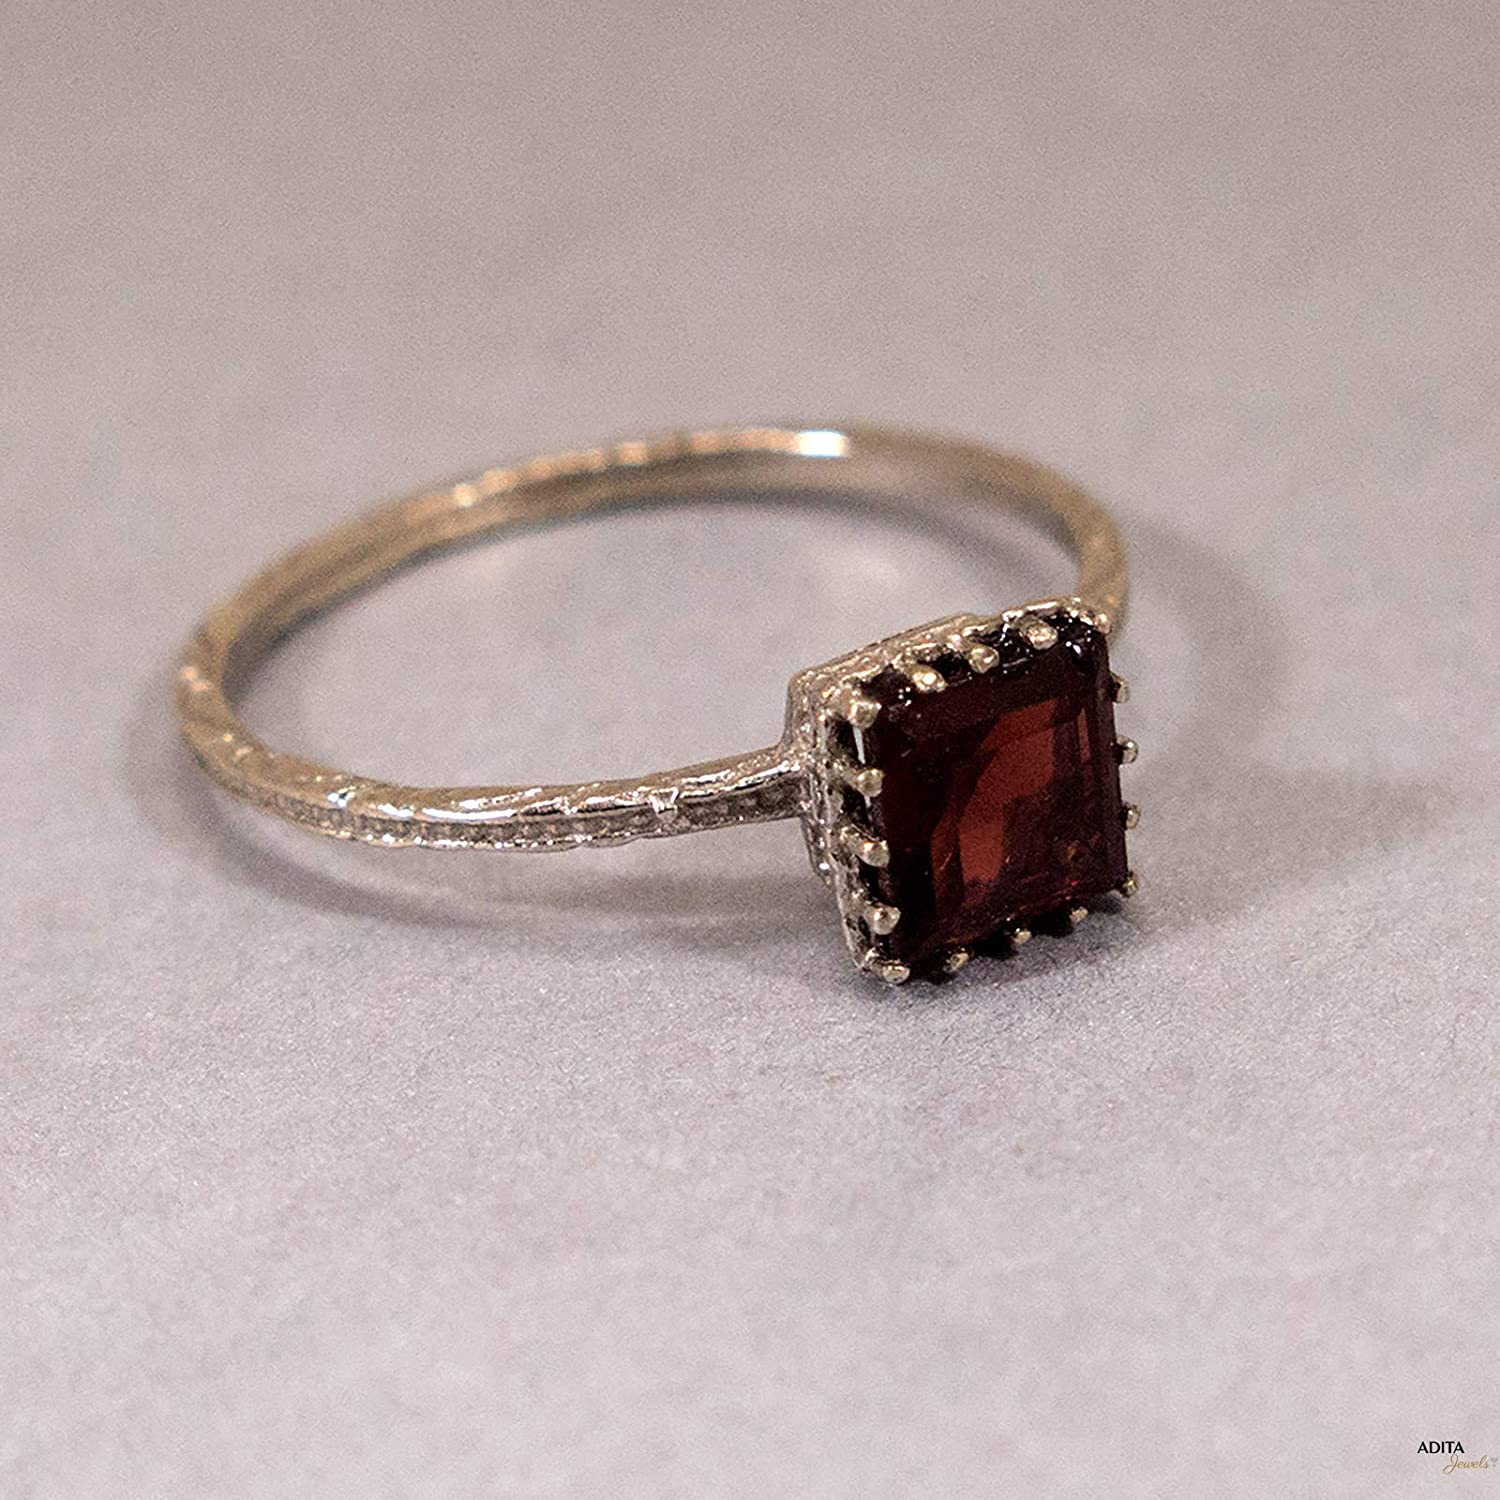 Delicate Jewelry Gift for Women 14K Solid Gold Natural Red Garnet Ring White Gold Dainty Solitaire Ring Handmade Unique Promise Ring Capricorn January Birthstone 5x5mm Genuine Square Gemstone